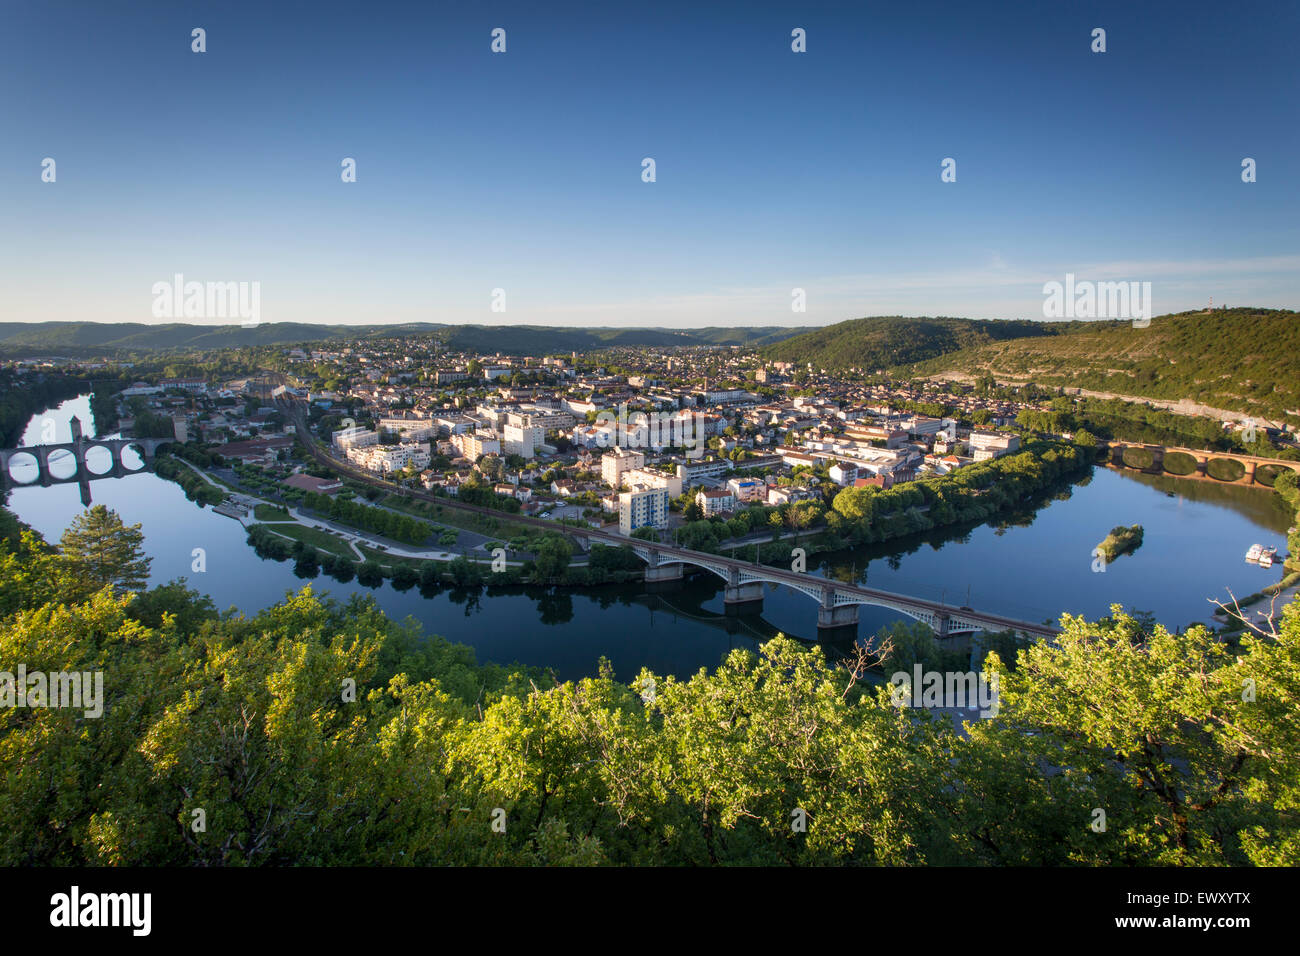 Town of Cahors from Mount Saint-Cyr with Pont Valentre crossing River Lot. Midi-Pyrenees, France - Stock Image